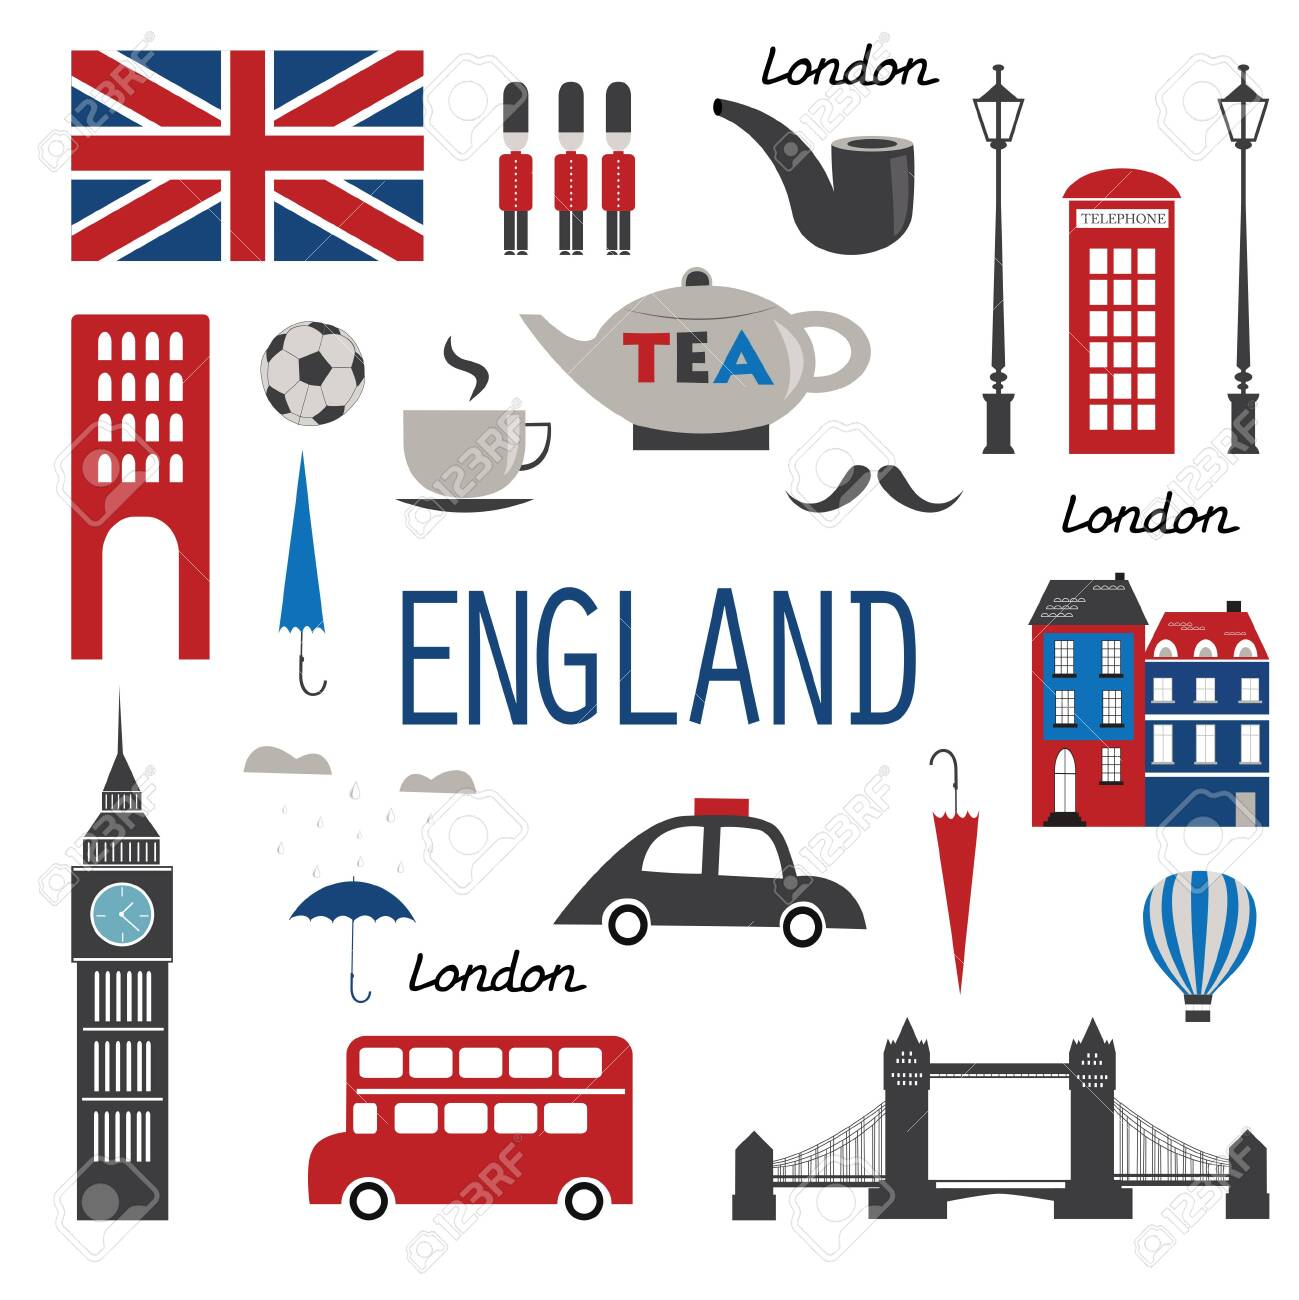 England Symbols And Icons. Vector Illustration Royalty Free Cliparts,  Vectors, And Stock Illustration. Image 137889874.